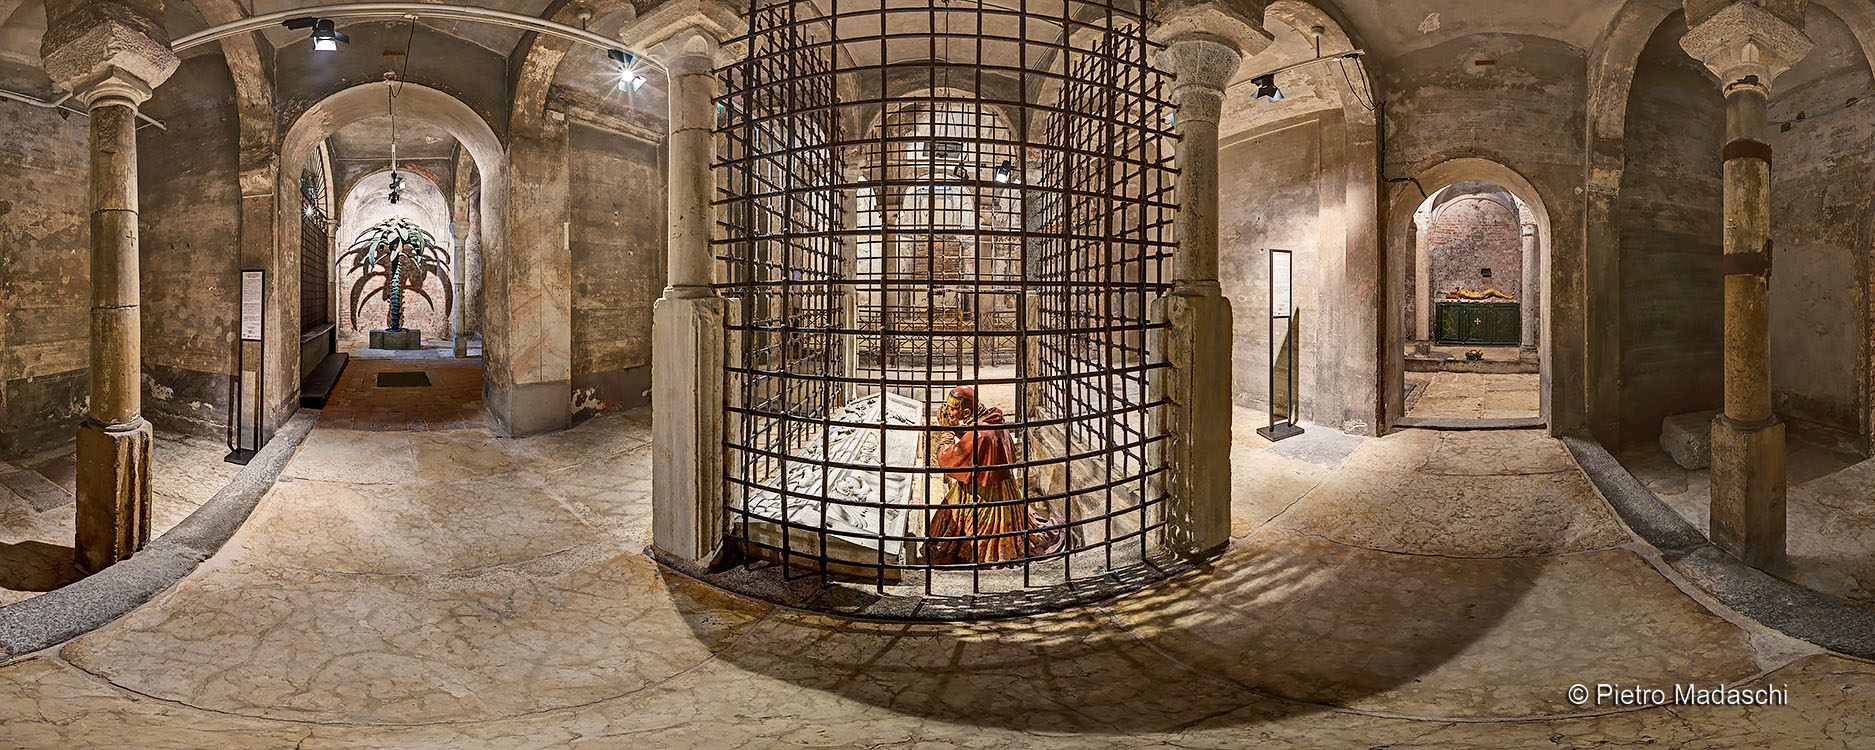 The Crypt of San Sepolcro: St Carlo Borromeo and the Holy Sepulchre